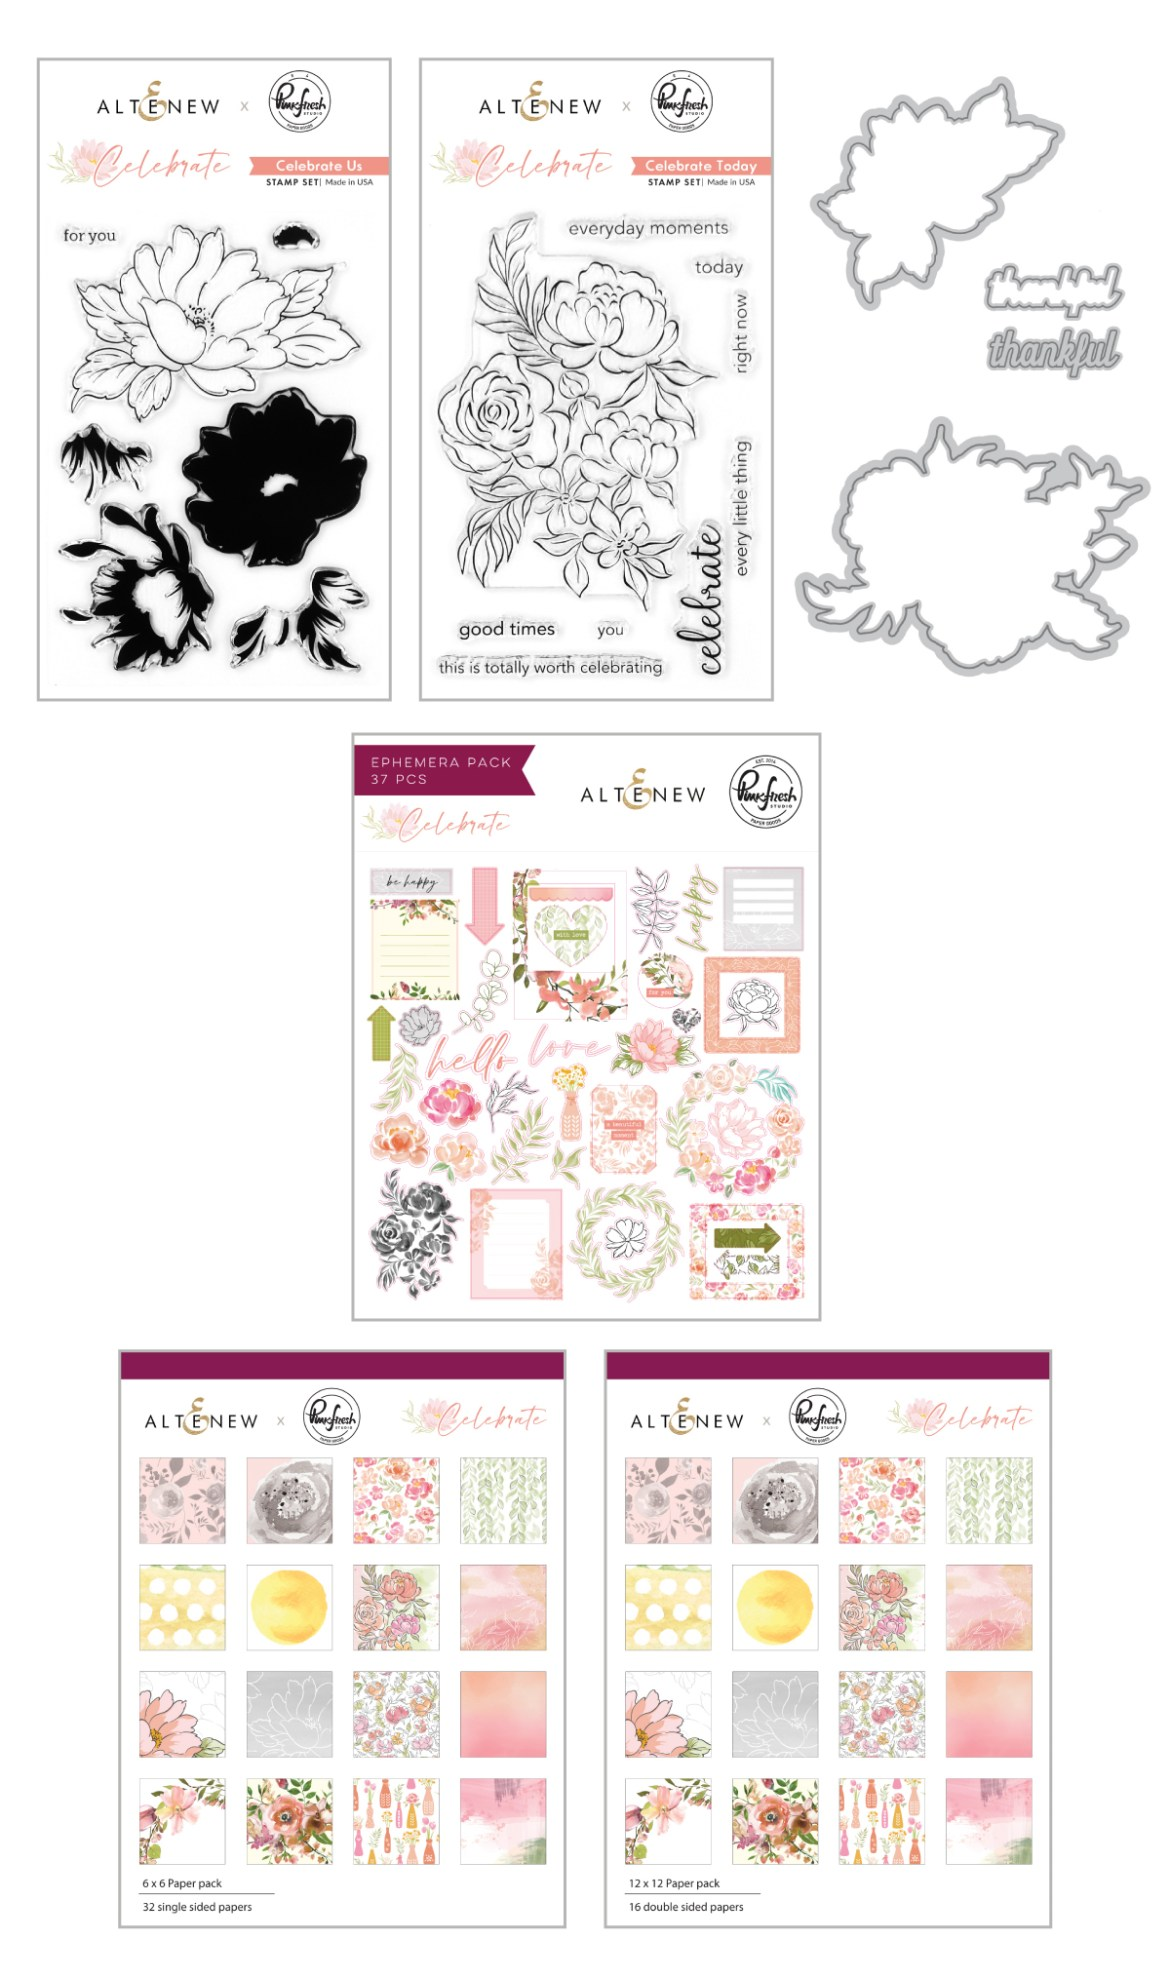 Image of all the products in Celebrate release by Altenew and Pinkfresh Studio. Includes 2 stamp sets, dies, paper packs, and ephemera